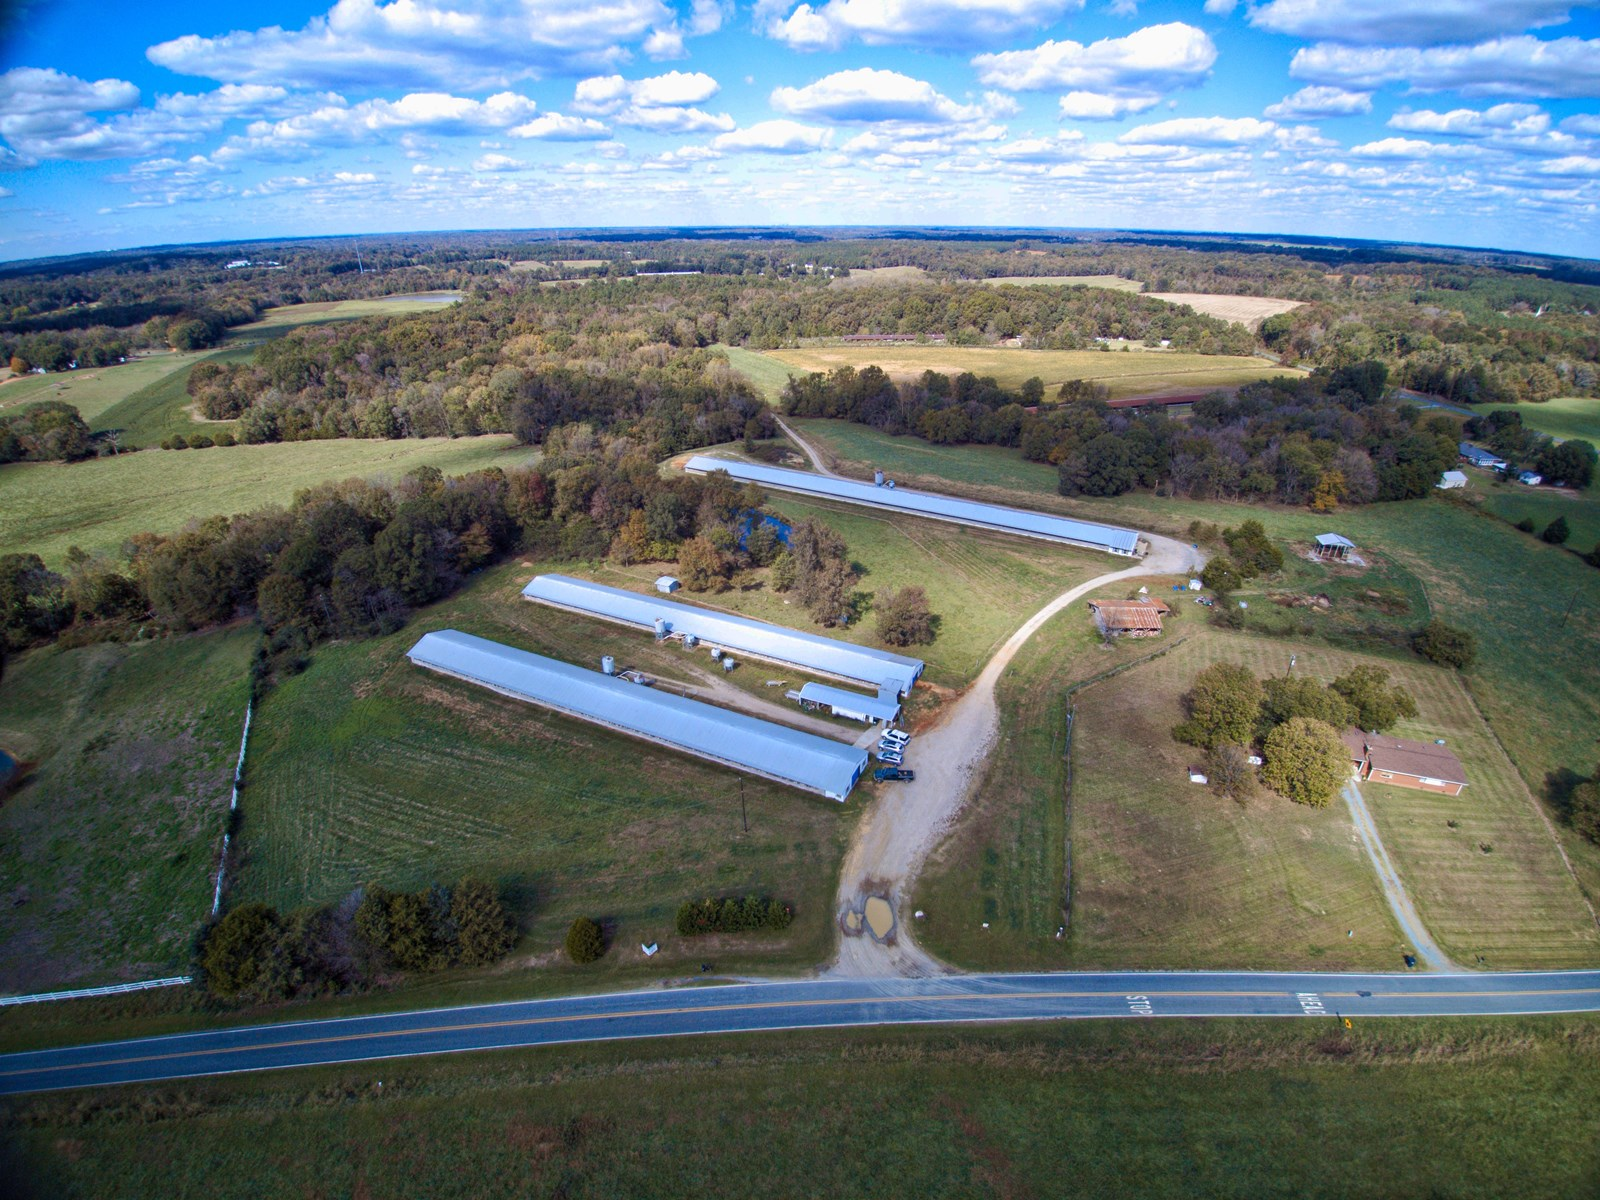 38 Acre Poultry Farm With Home For Sale Near Waxhaw, NC